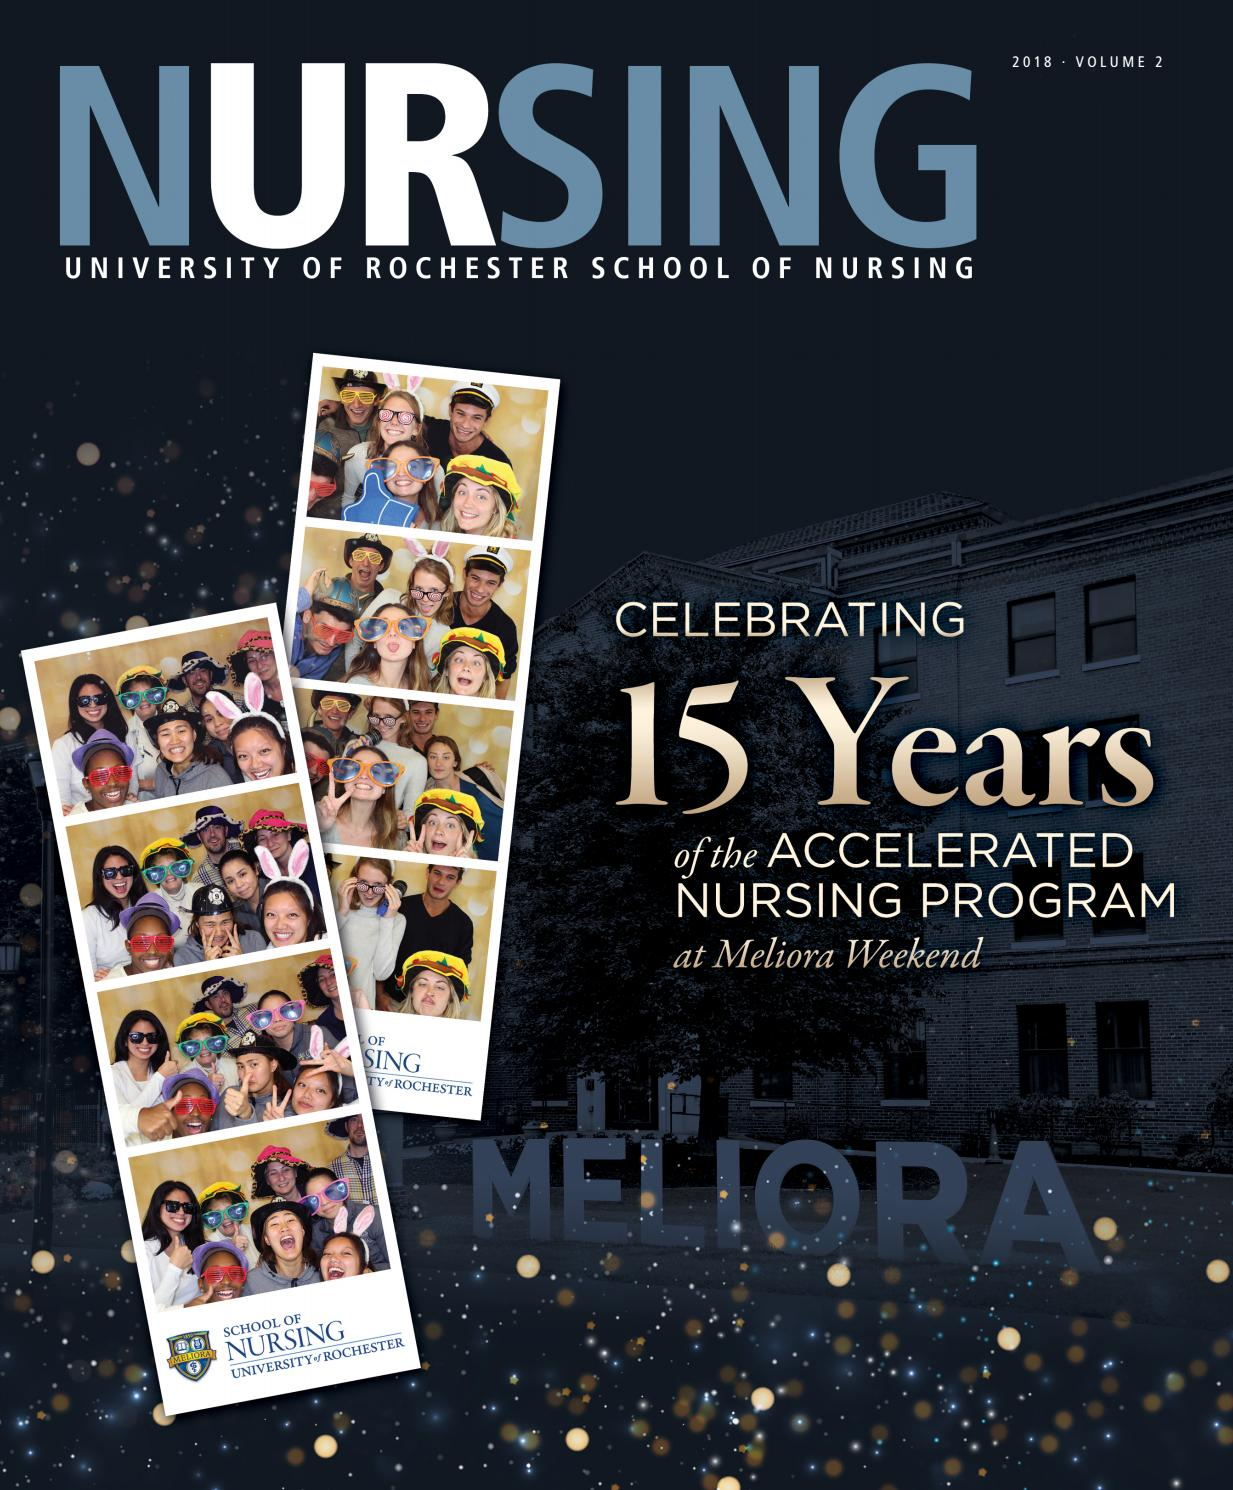 NURSING Magazine | 2018 | Volume 2 by University of